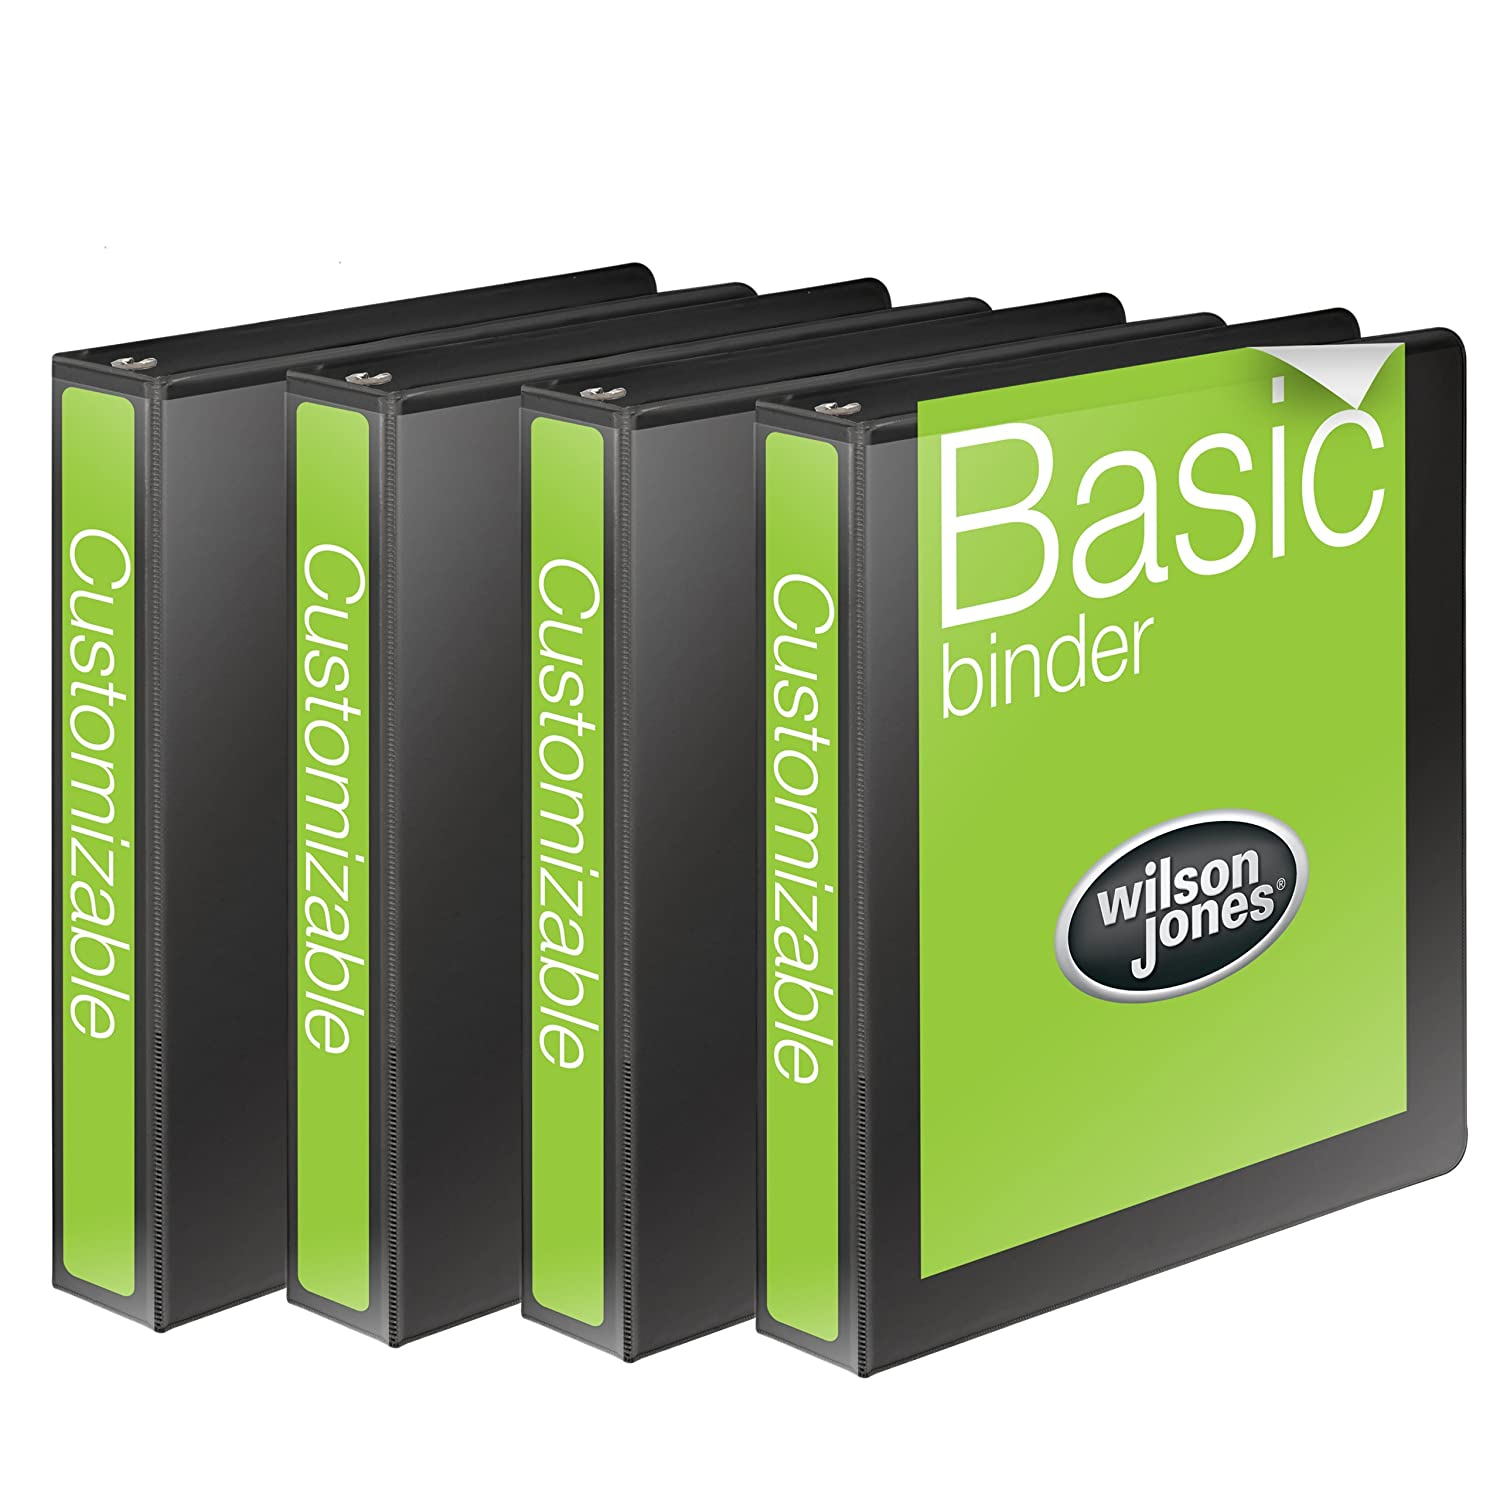 Wilson Jones 1 Inch 3 Ring Binder, Basic Round Ring View Binder, Black, 4 Pack (W70362-14BPP)